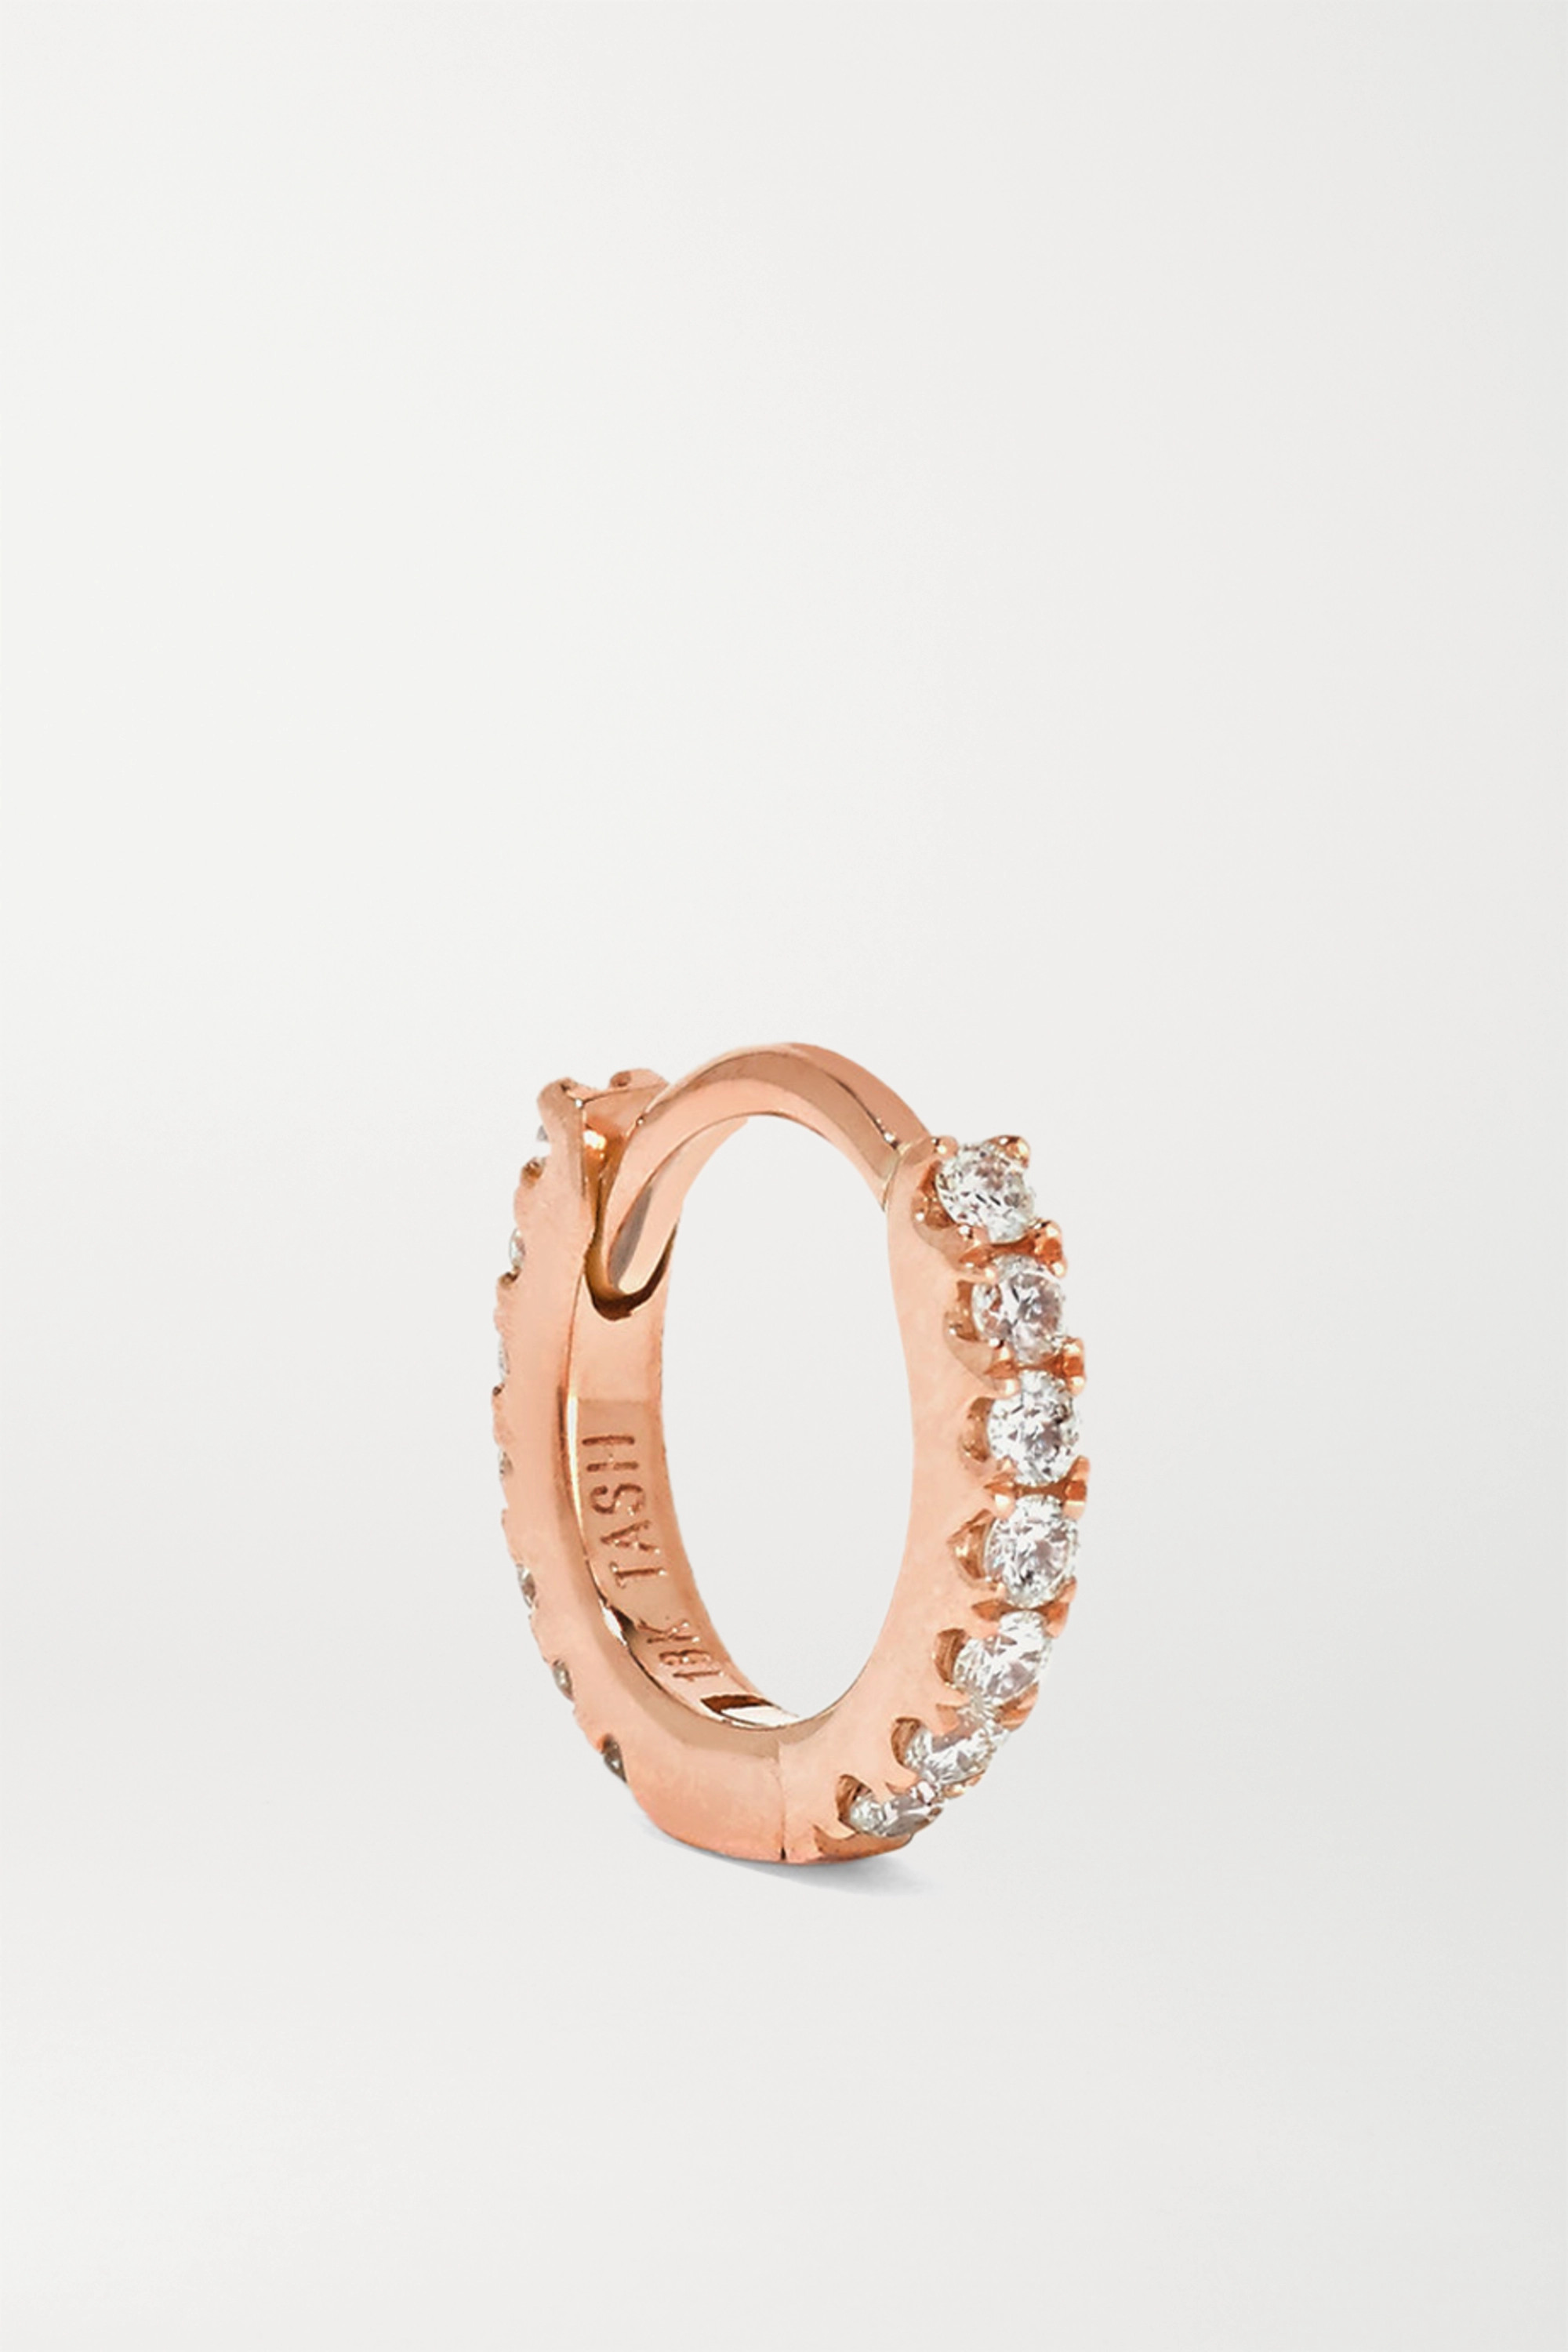 Maria Tash 5mm 18-karat rose gold diamond hoop earring